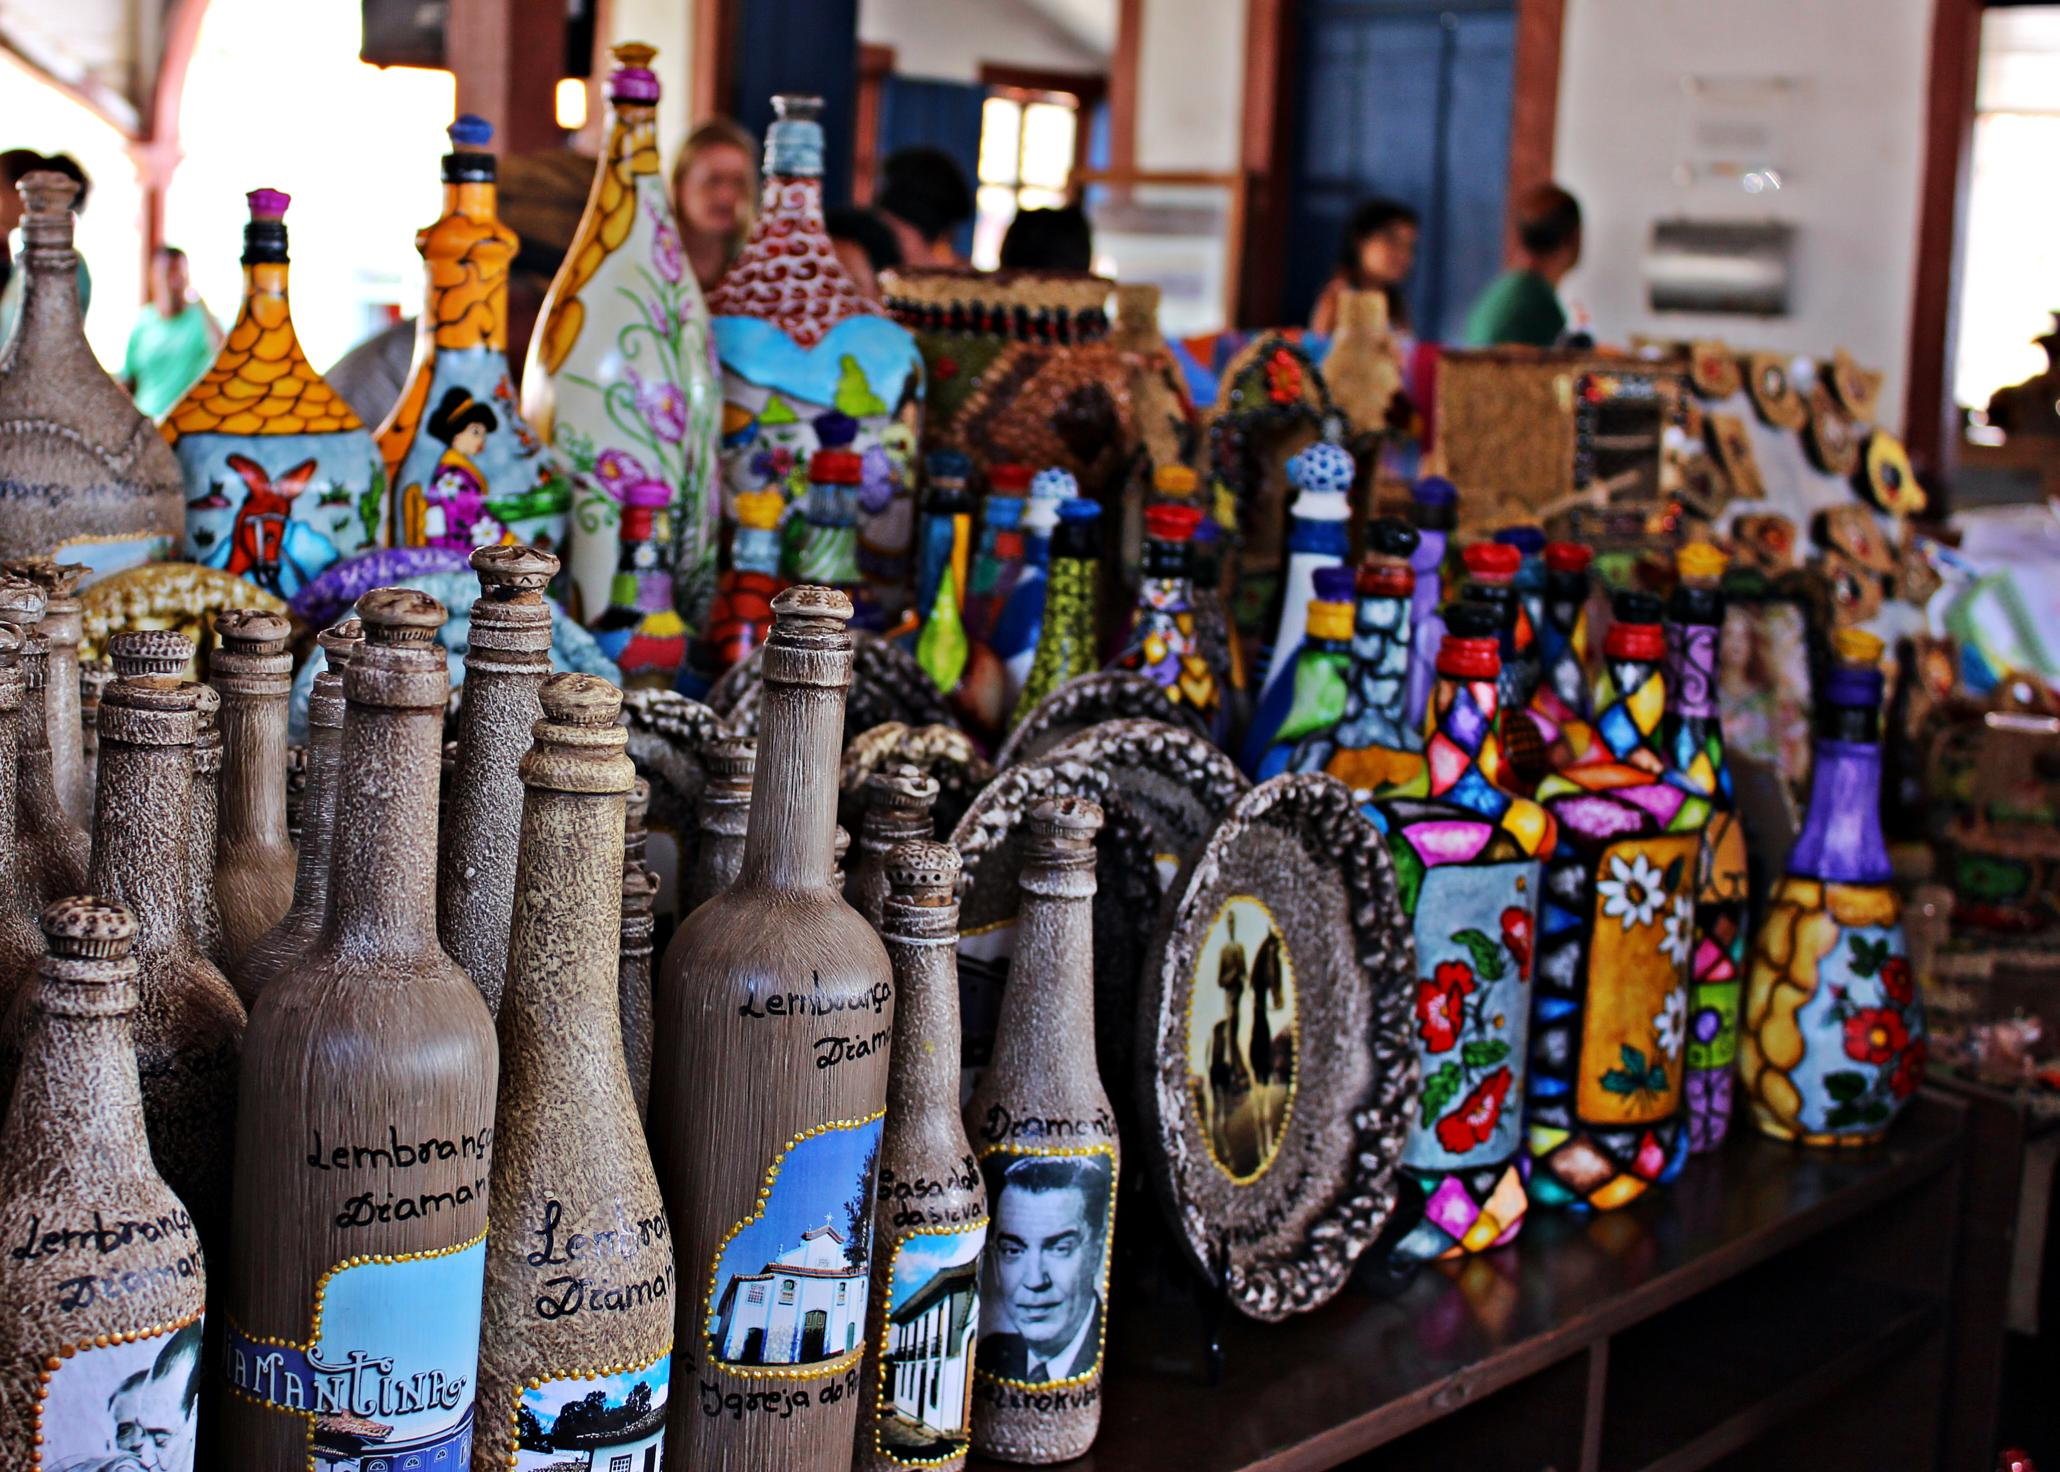 Handcrafts at City Market of Diamantina, Brazil. Photo by Natália Gonçalves.